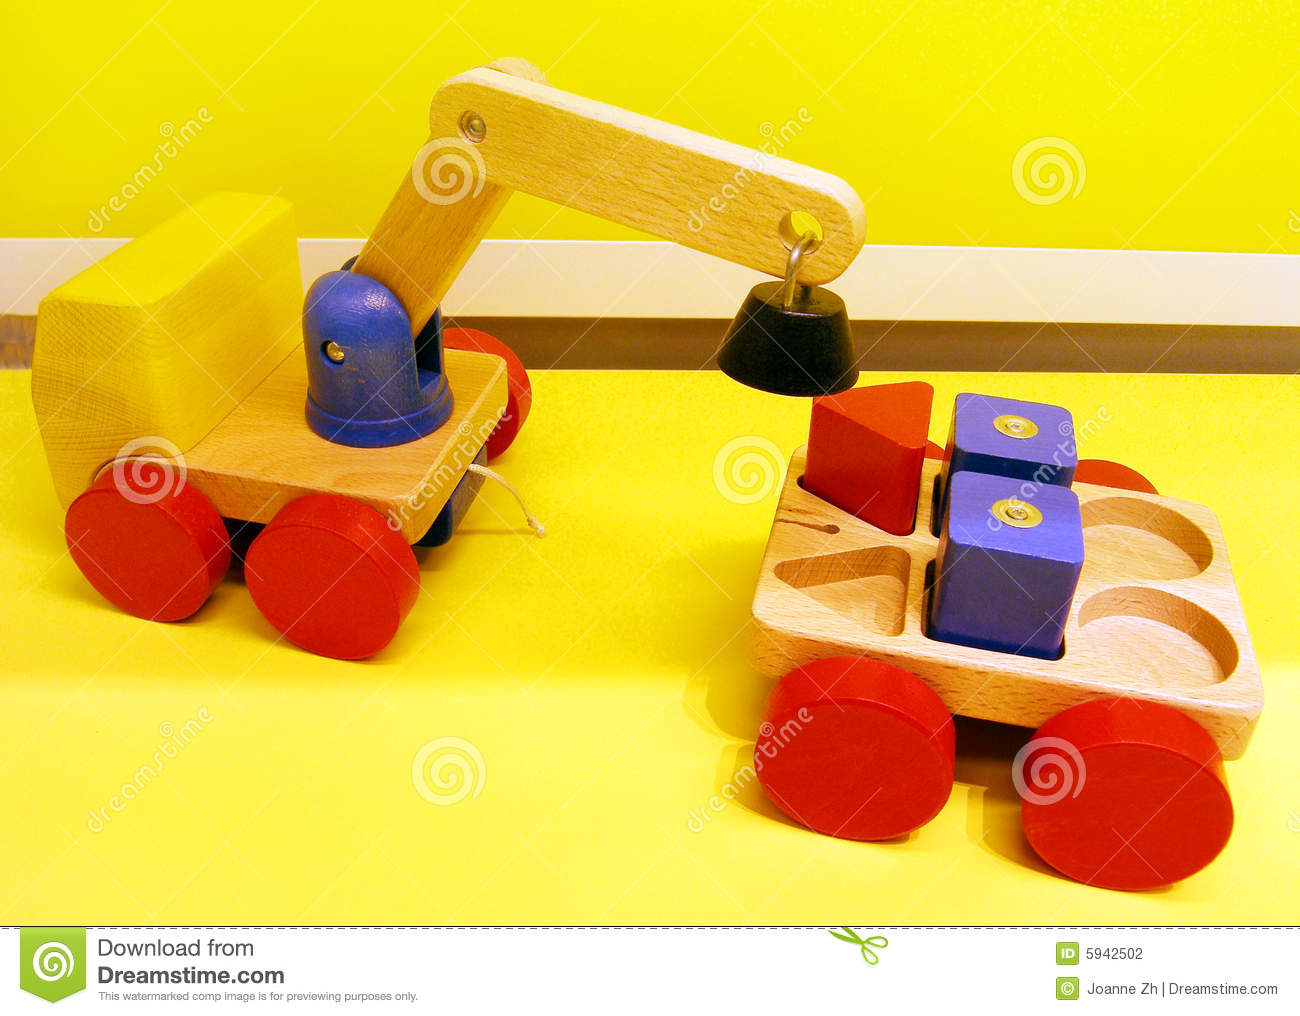 Magnetic toy trucks stock photo. Image of block, colorful ...